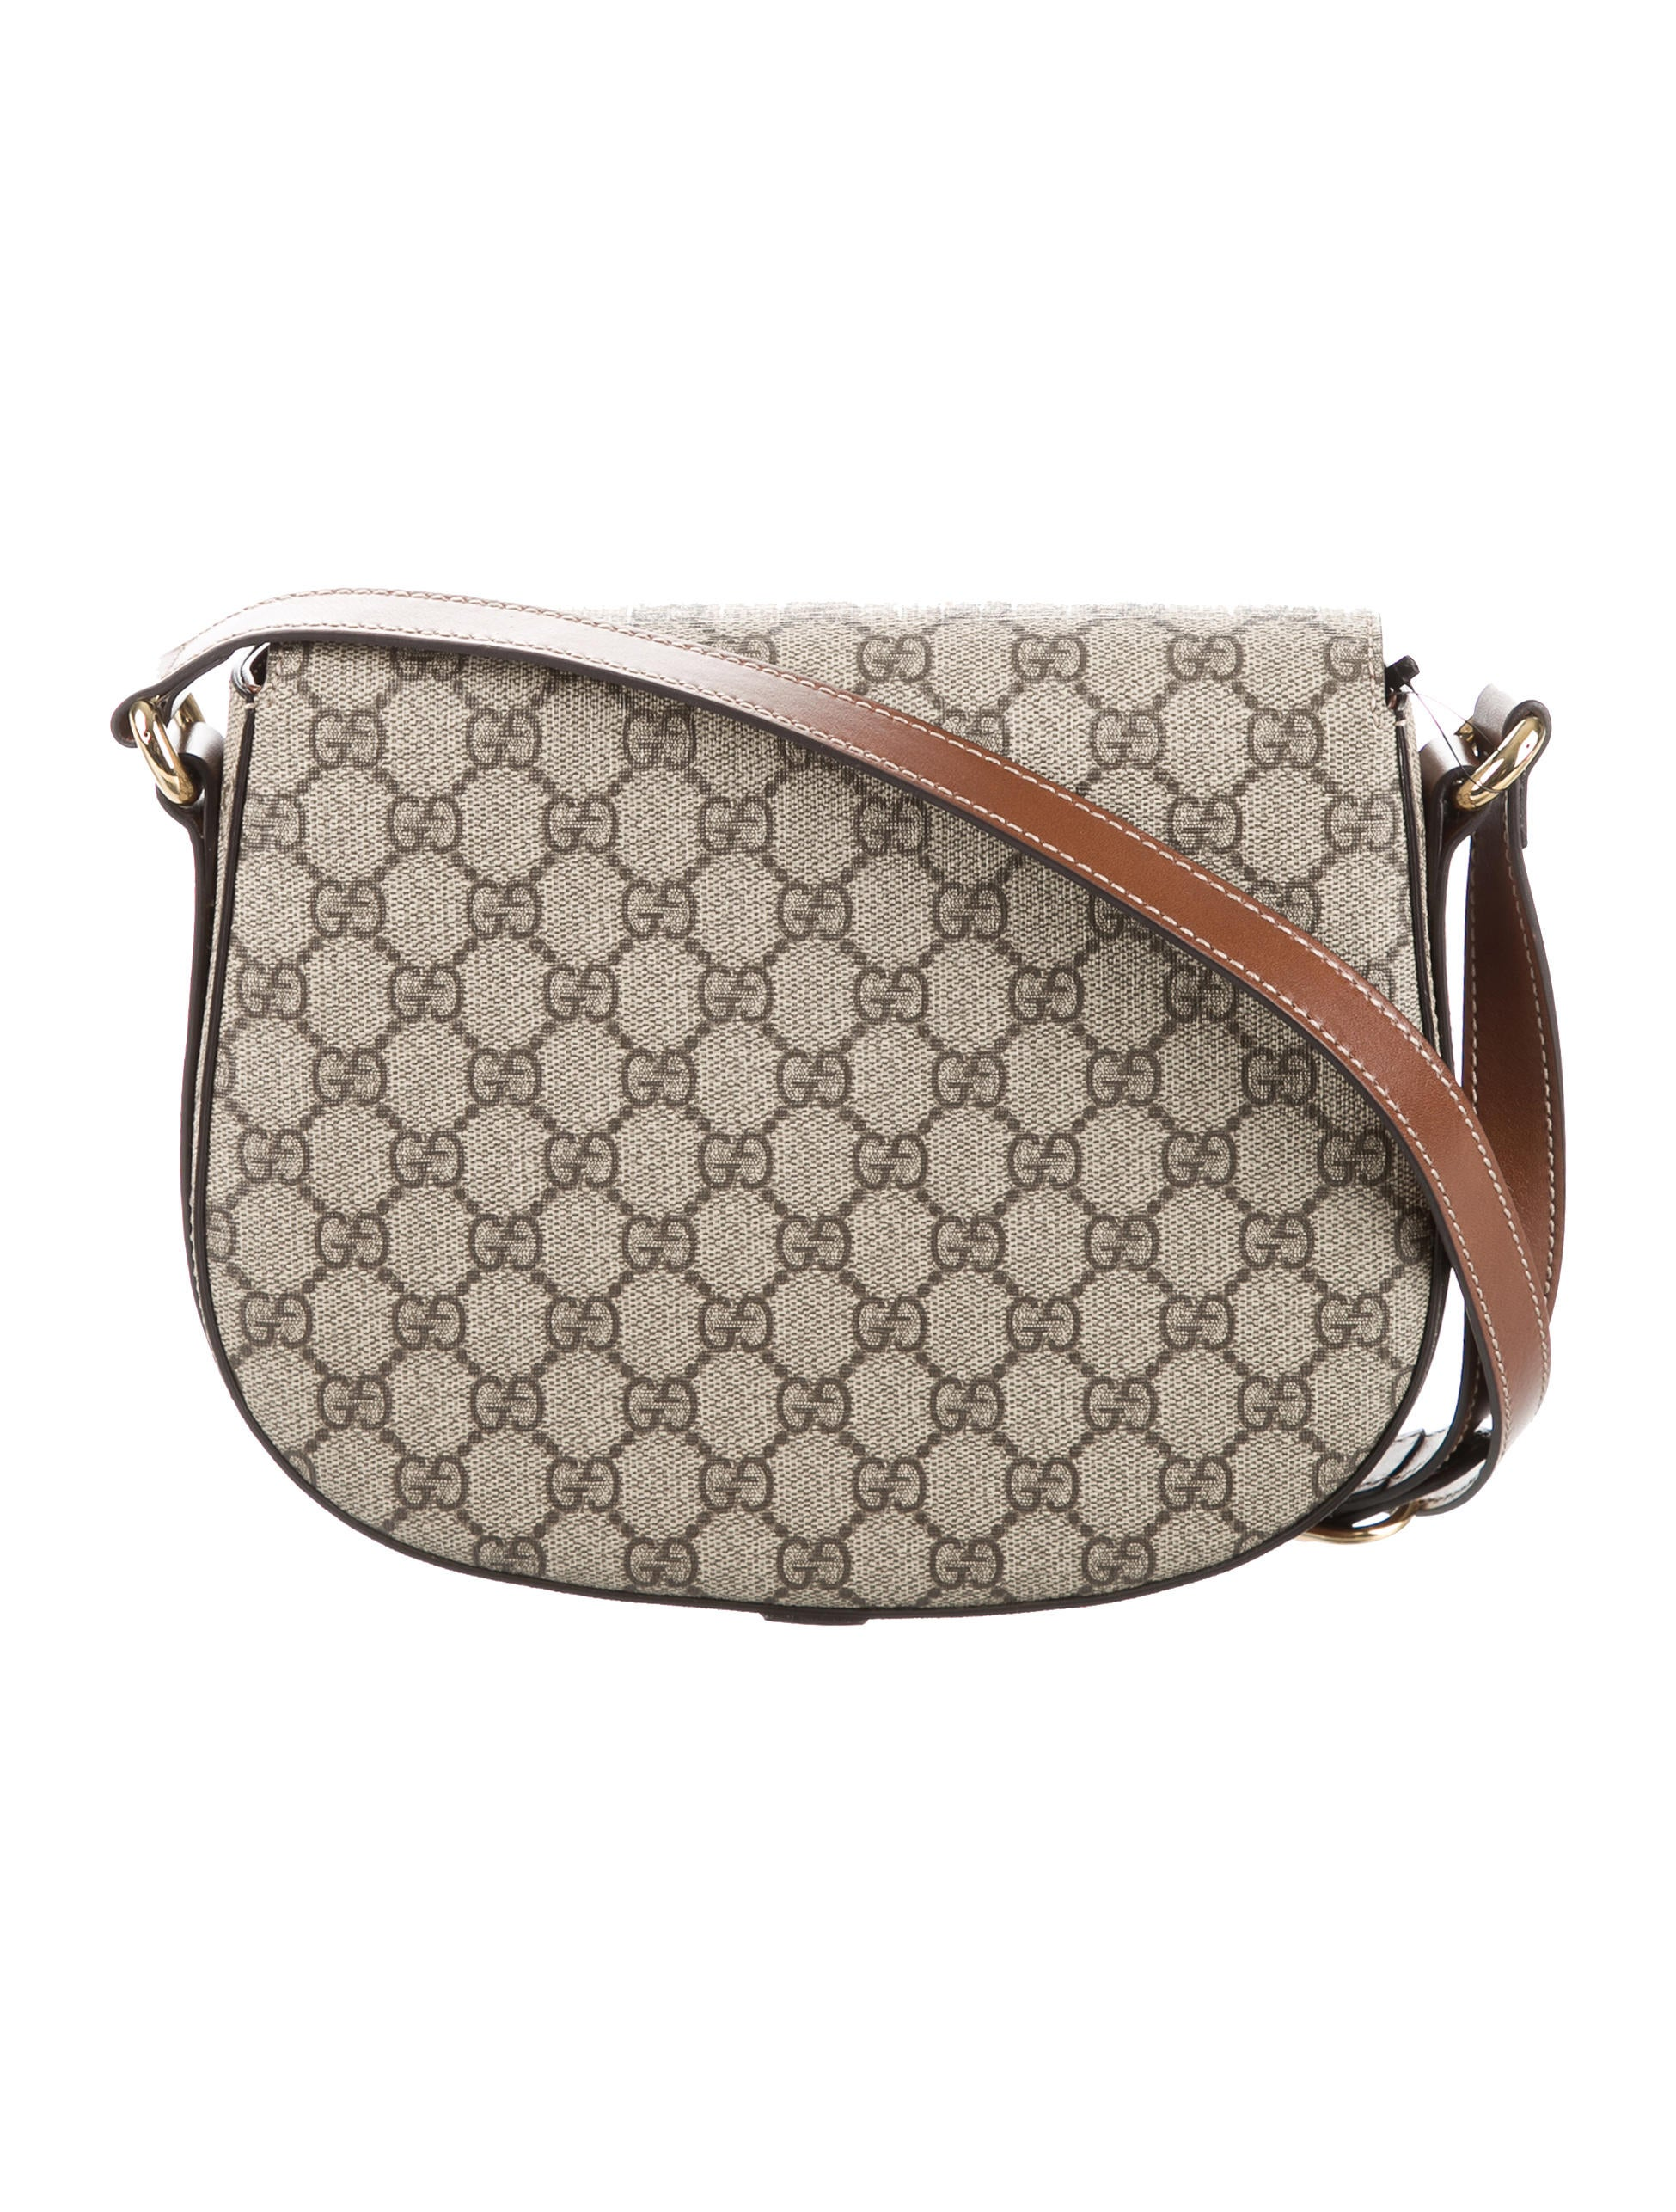 New Best GUCCI Handbags For Women And Girls Latest Collection 2017  What